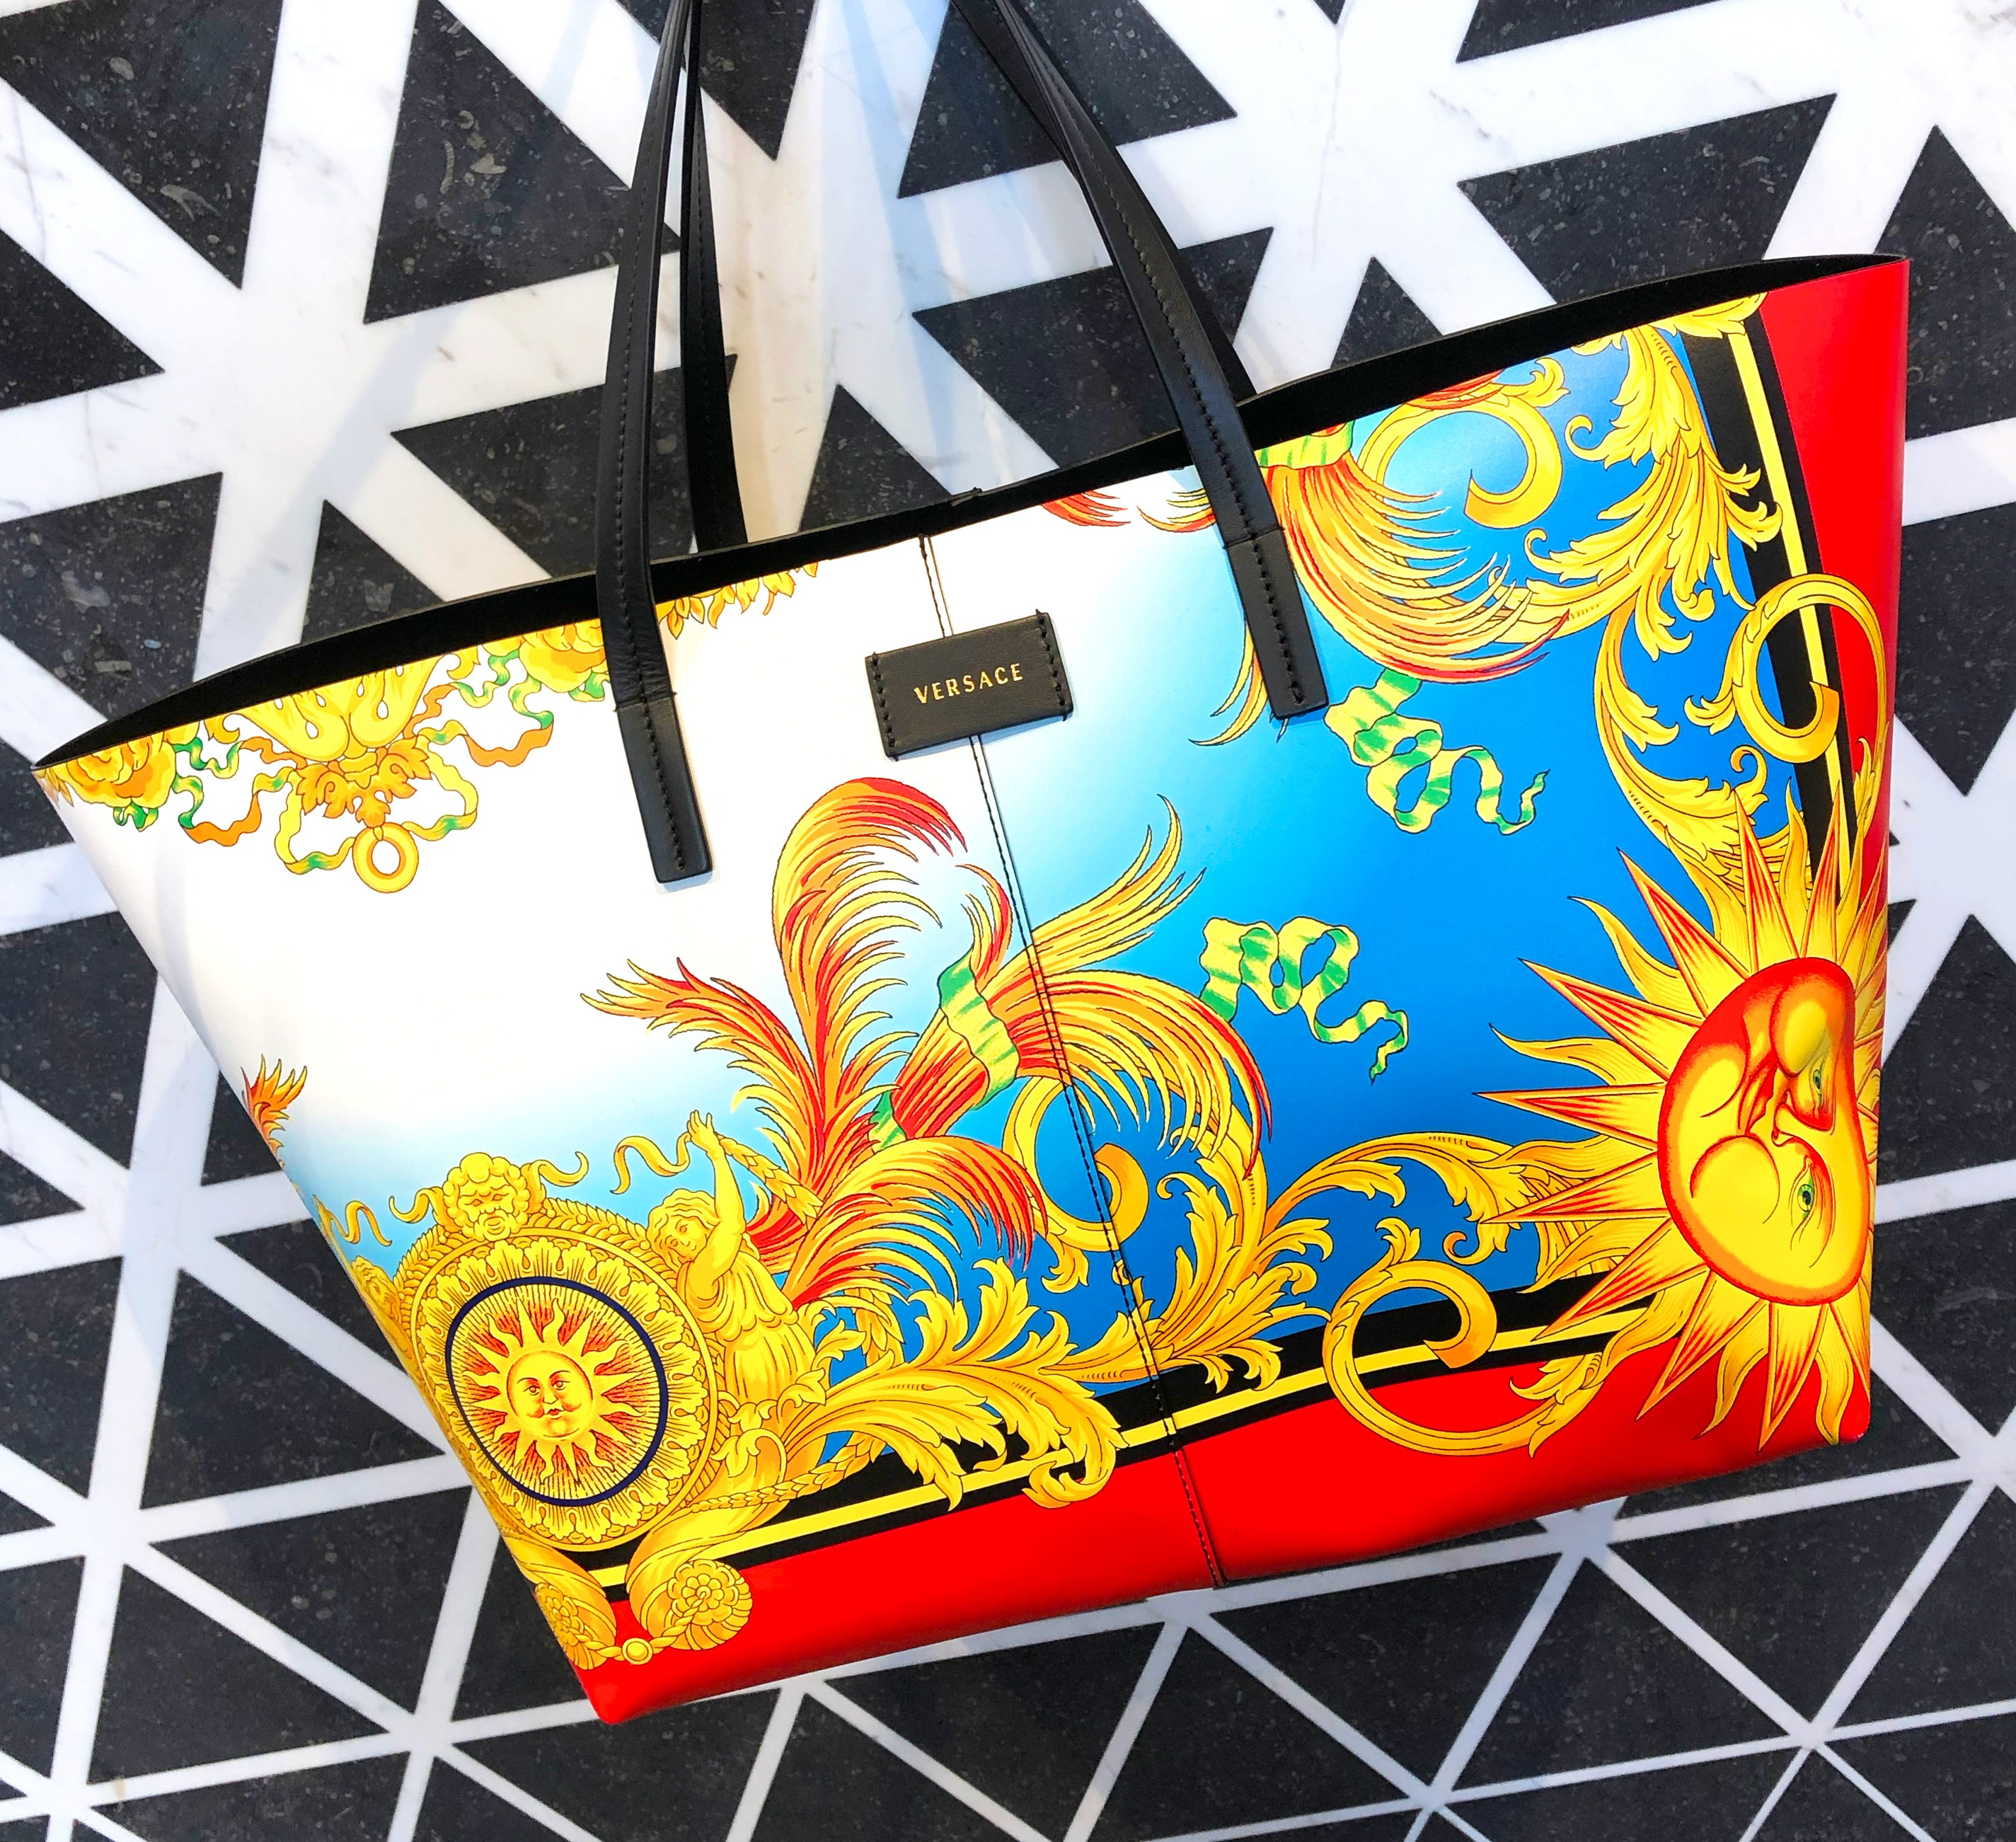 Versace Printed Soft Tote Bag with baroque design